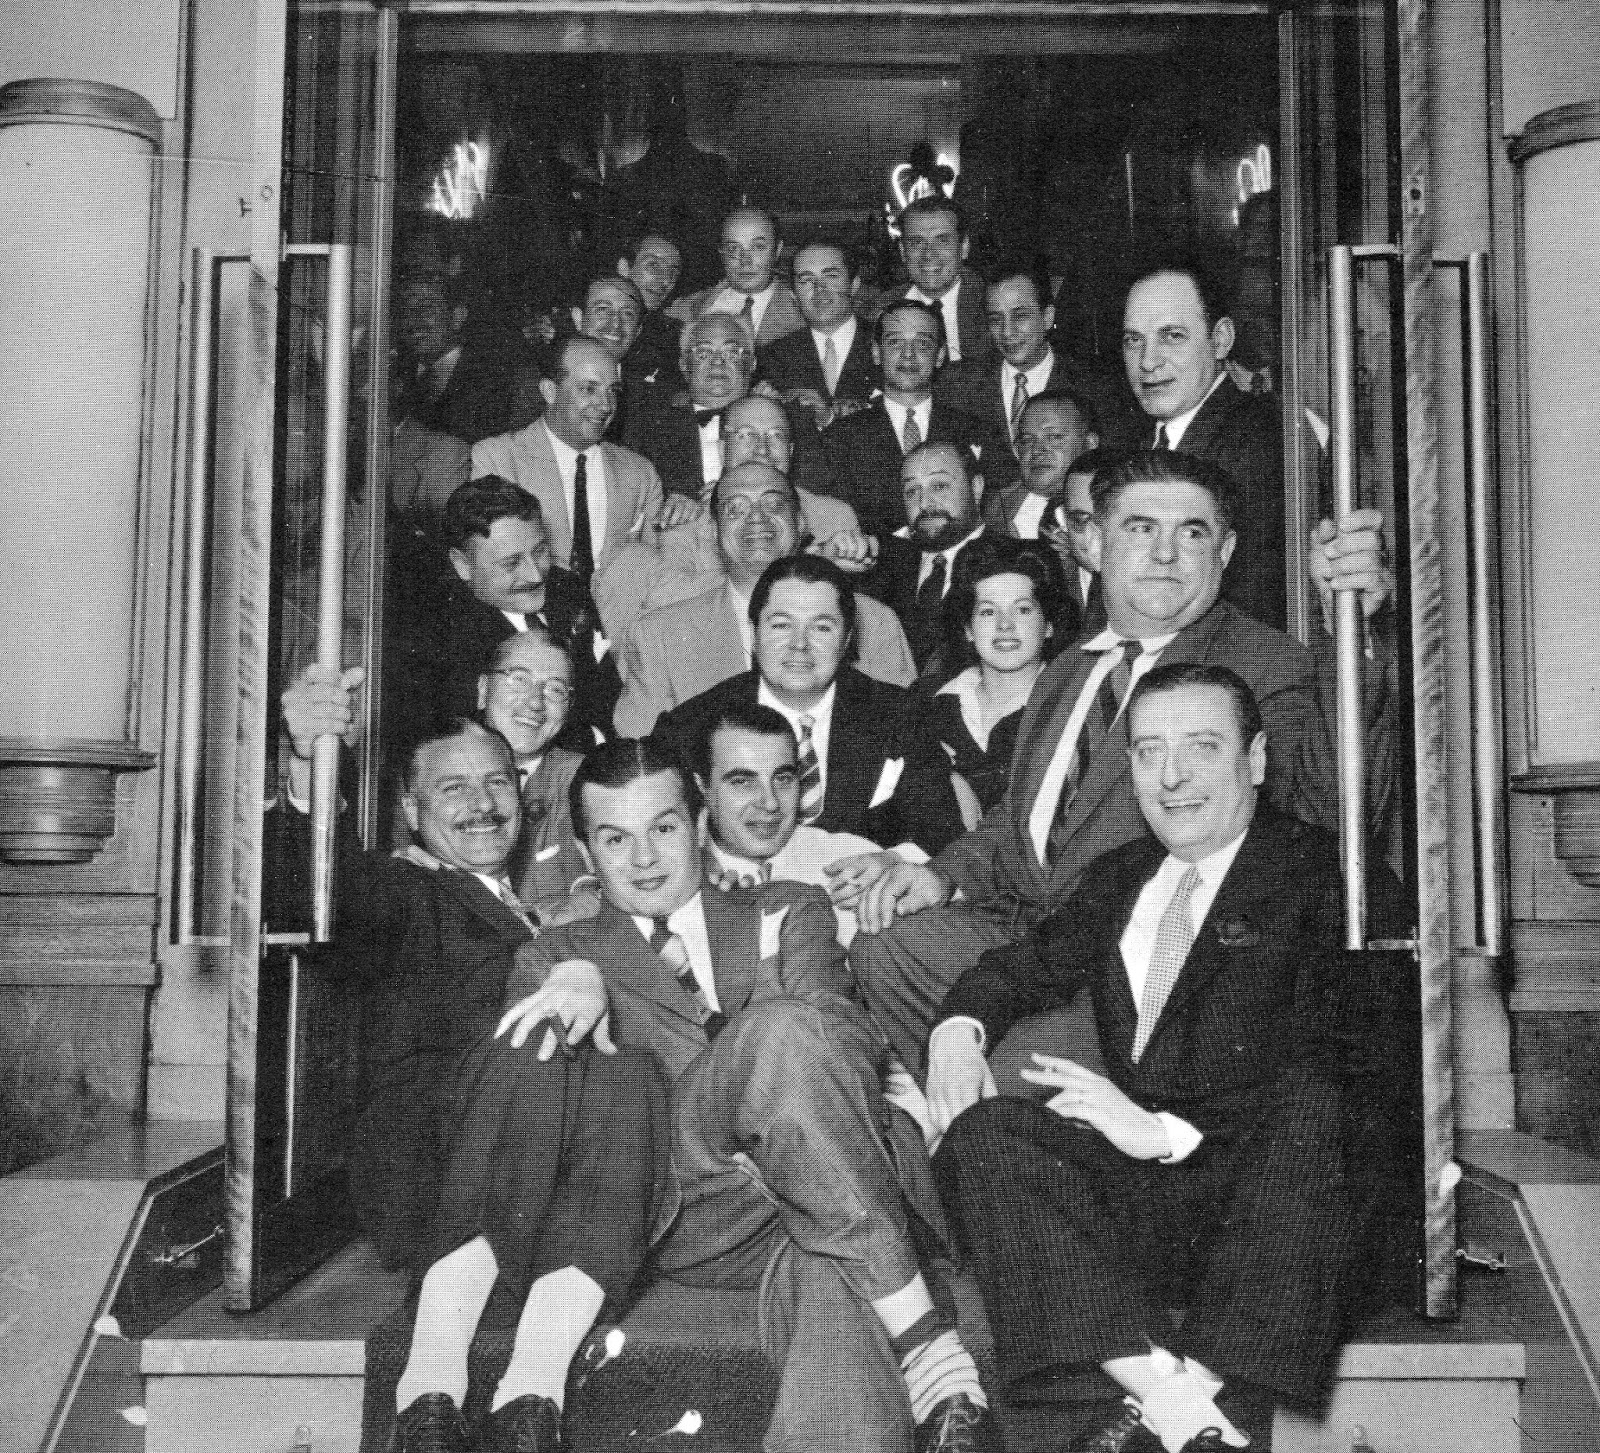 Troilo in the centre, surrounded by friends and other tango artists